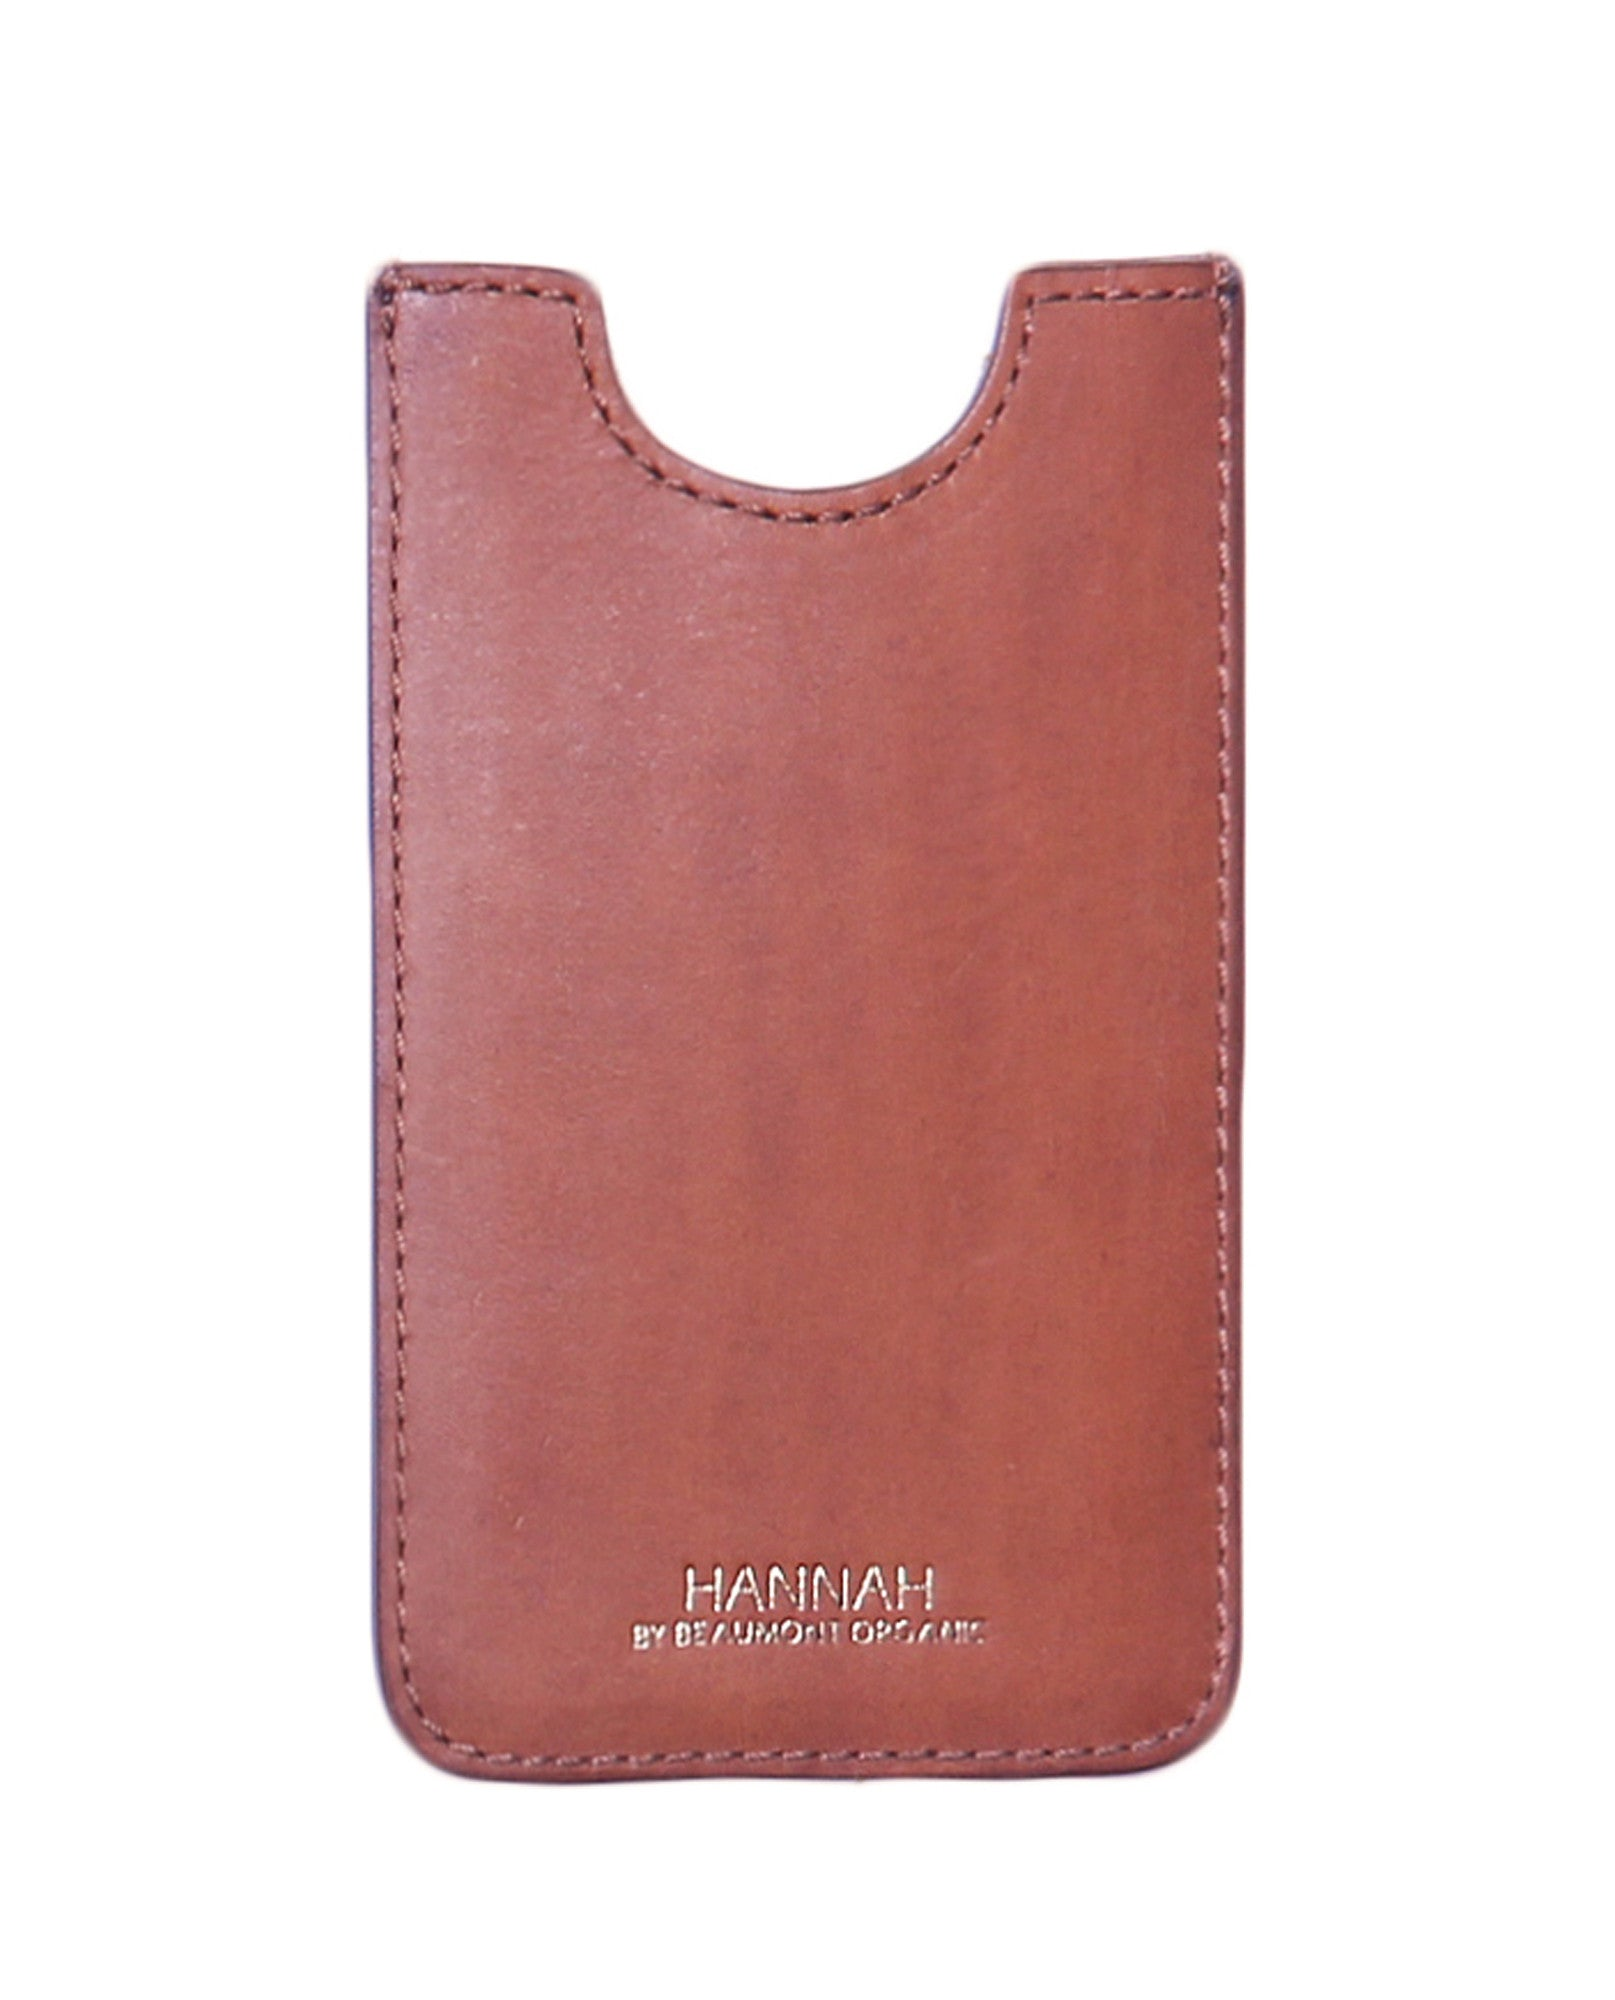 SORRENTO Leather Phone Case In Tan from Beaumont Organic